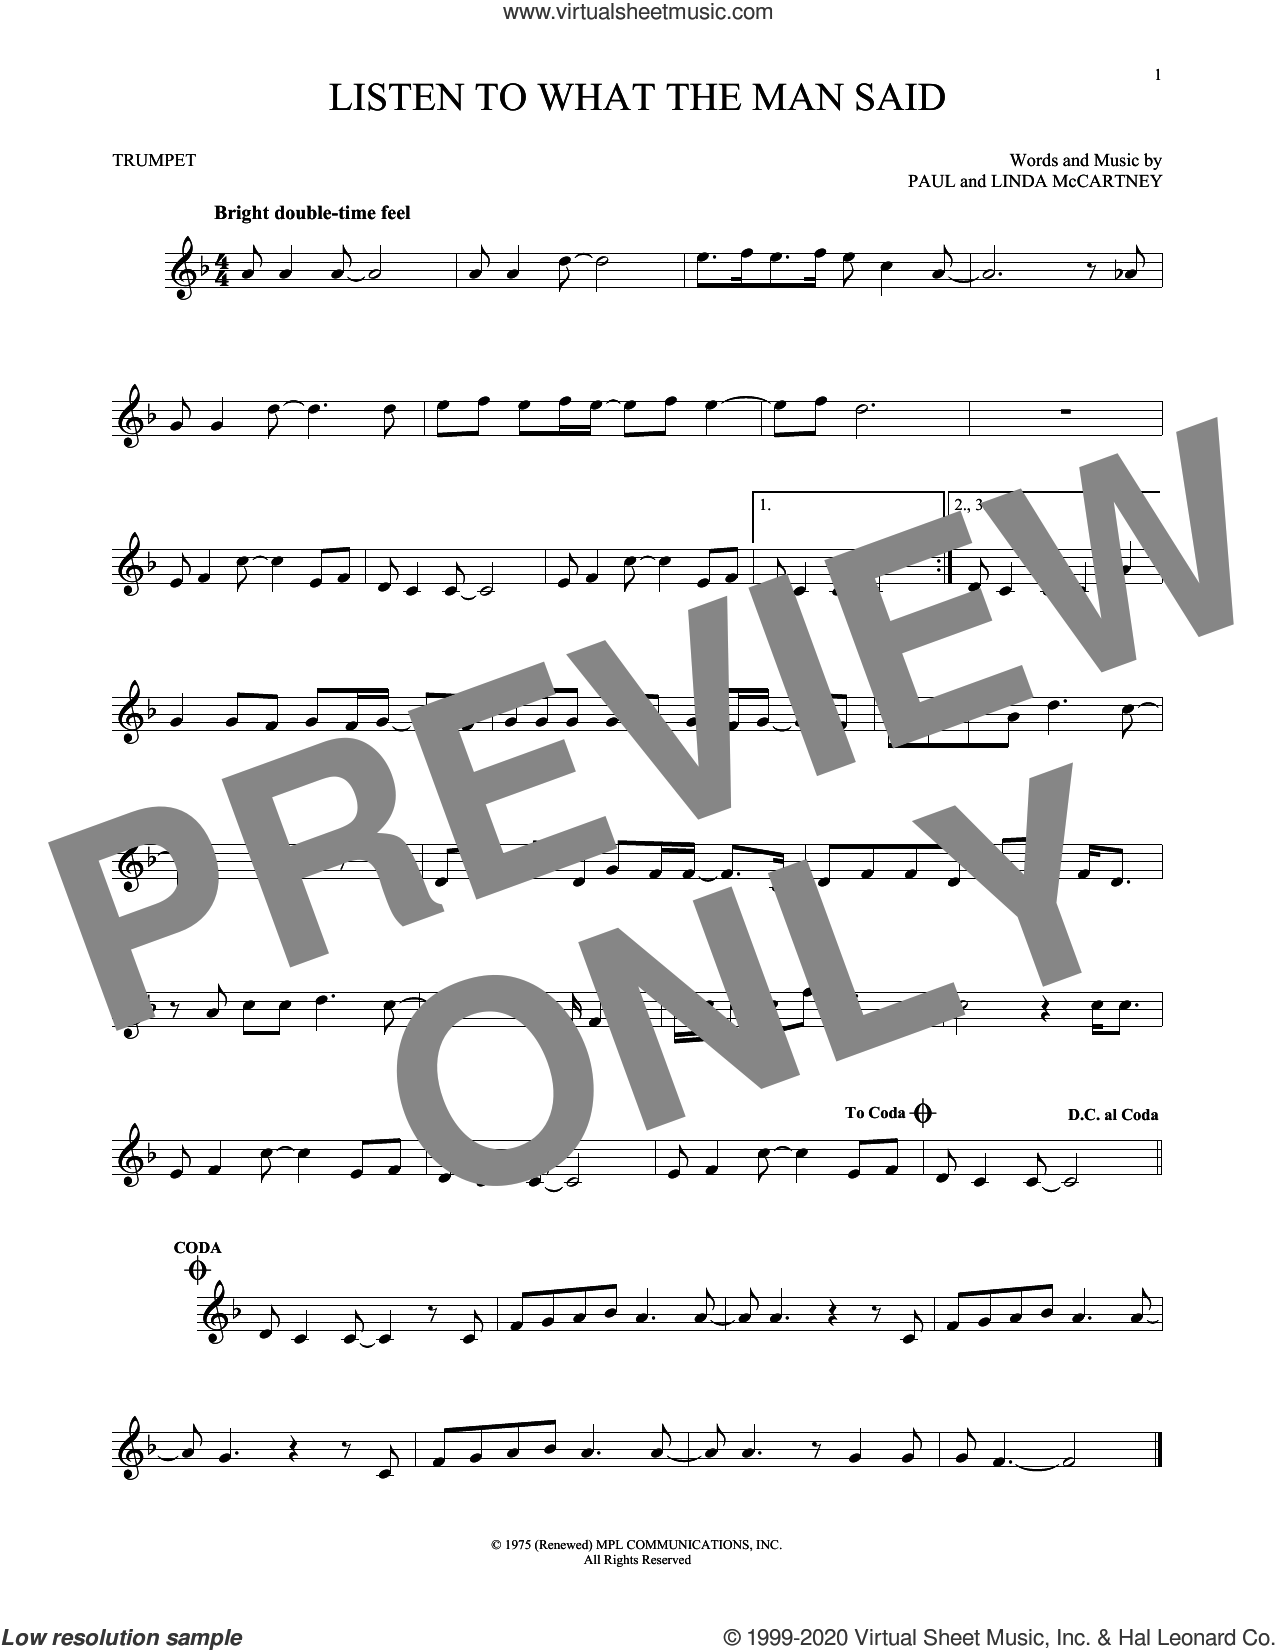 Listen To What The Man Said sheet music for trumpet solo by Wings, Linda McCartney and Paul McCartney, intermediate skill level